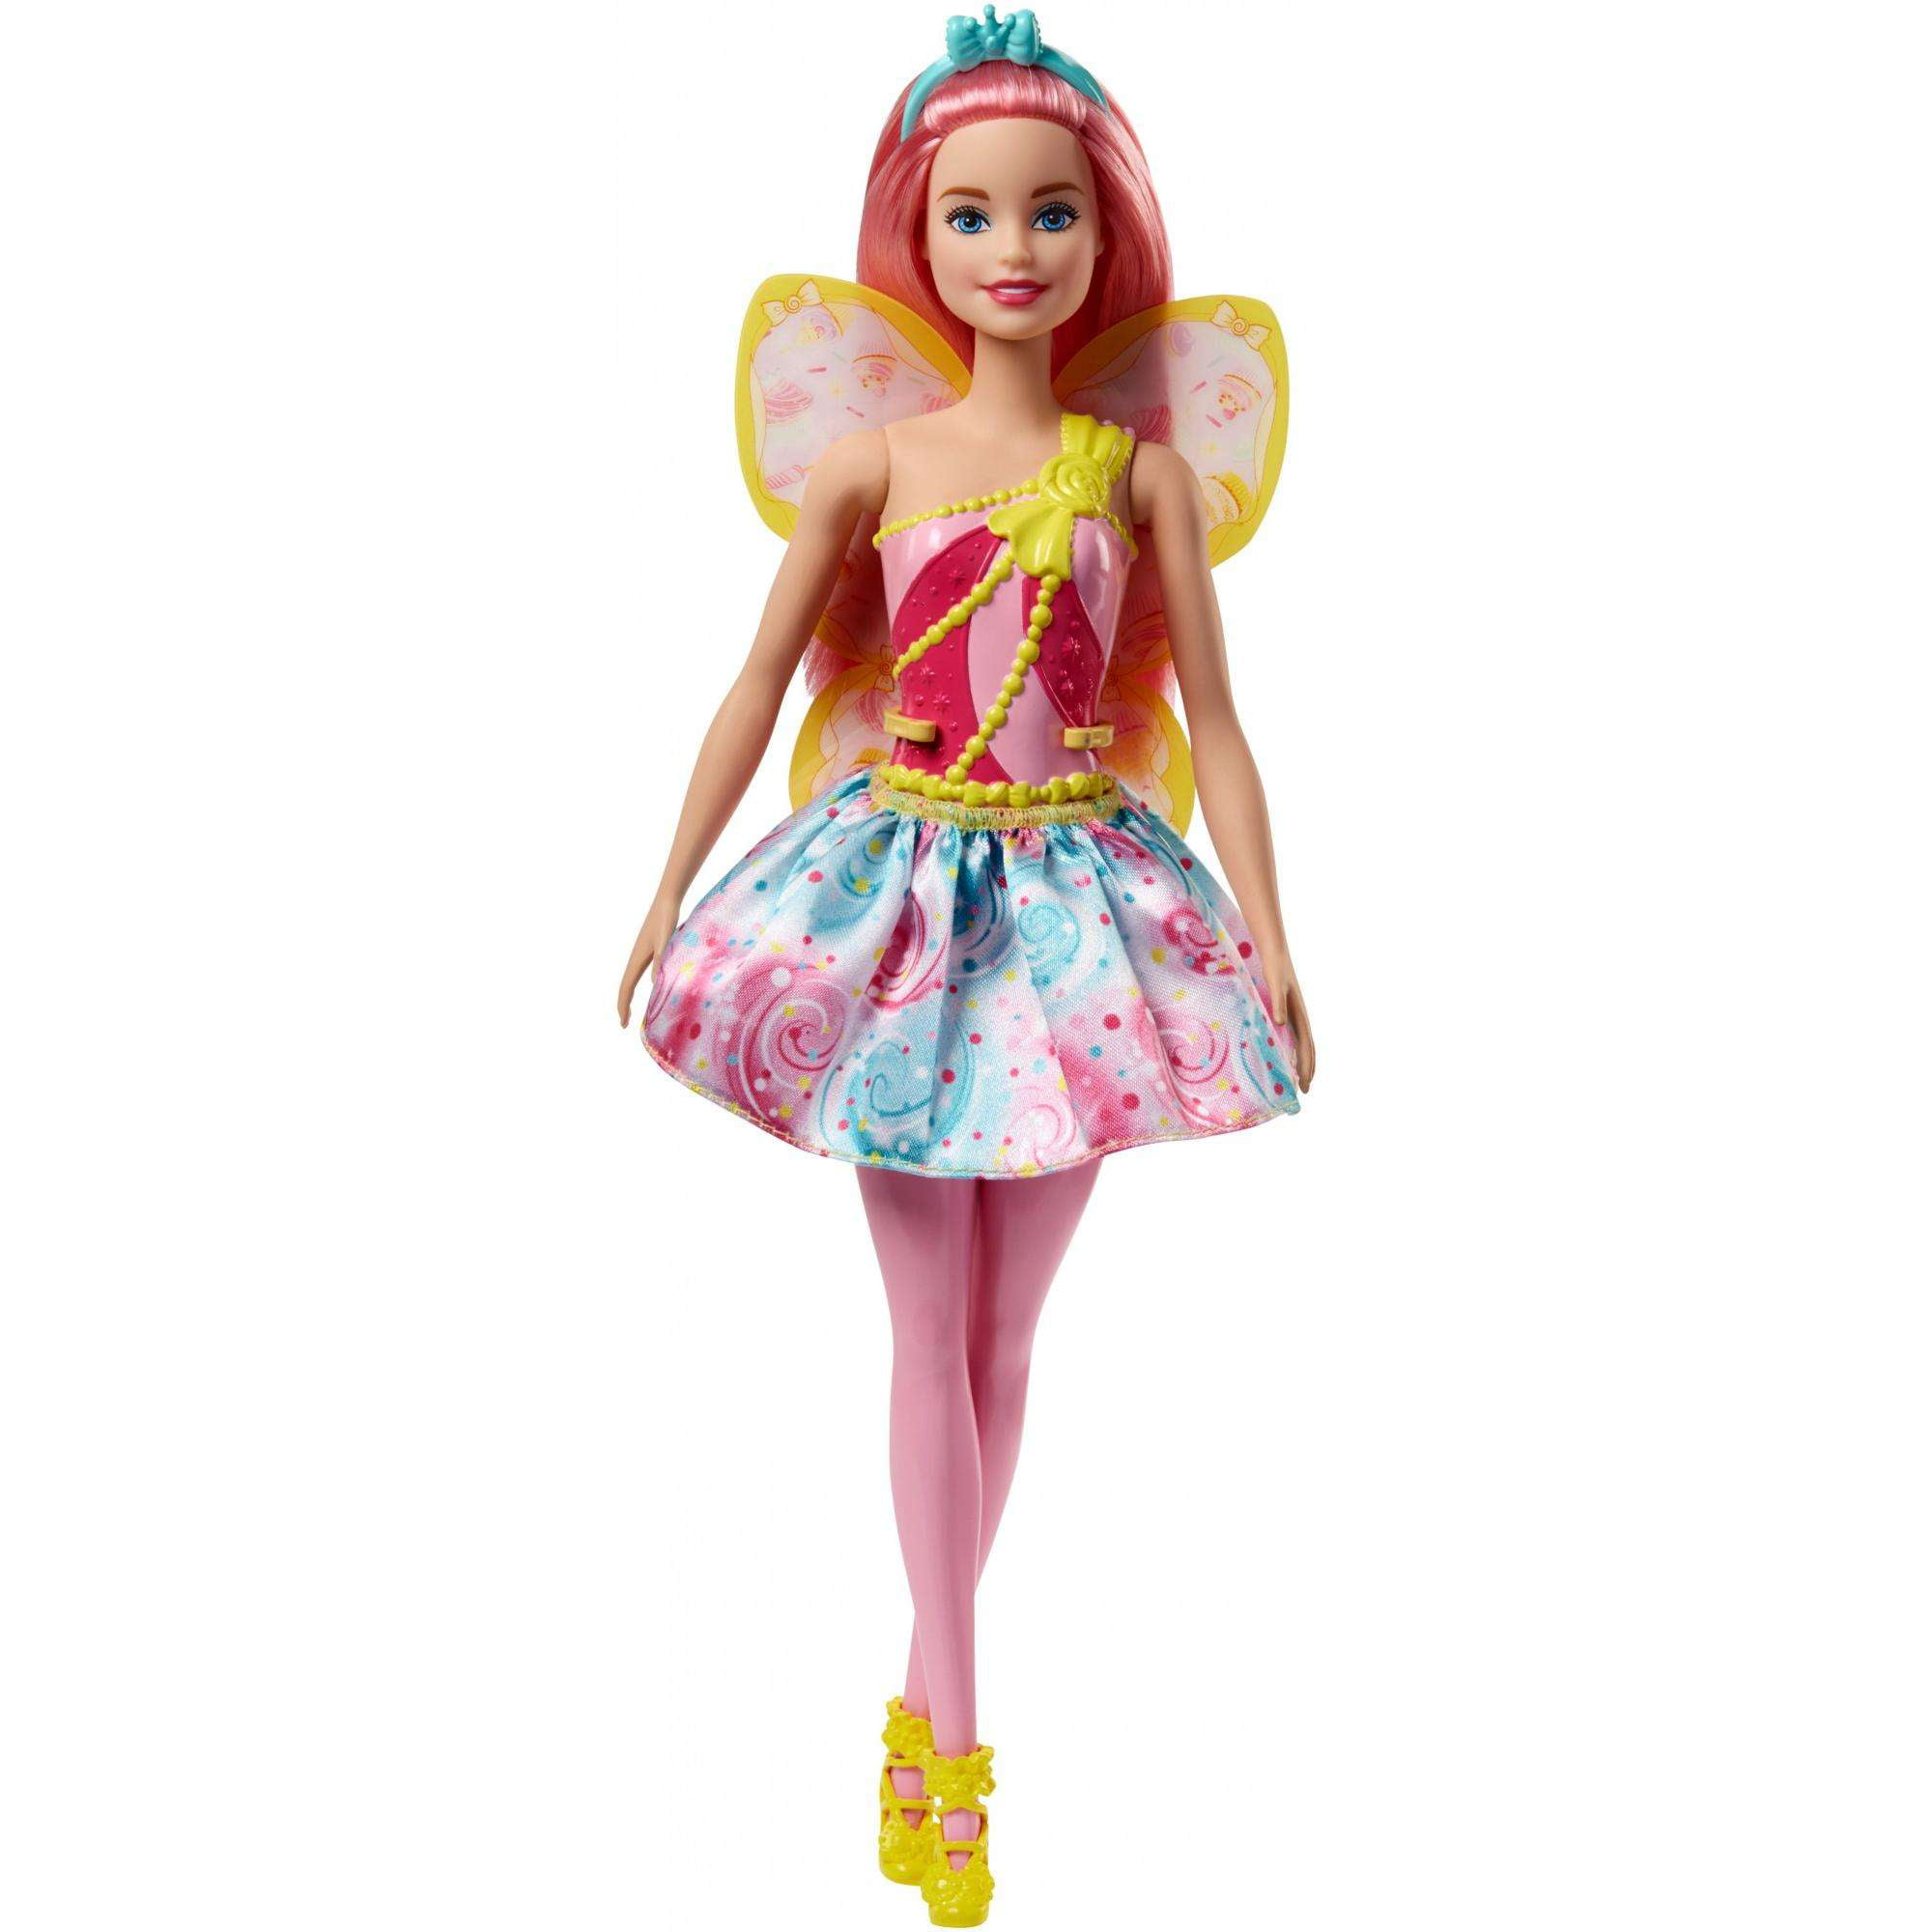 Barbie Dreamtopia Fairy Doll with Pink Hair & Candy-Themed Wings by Mattel